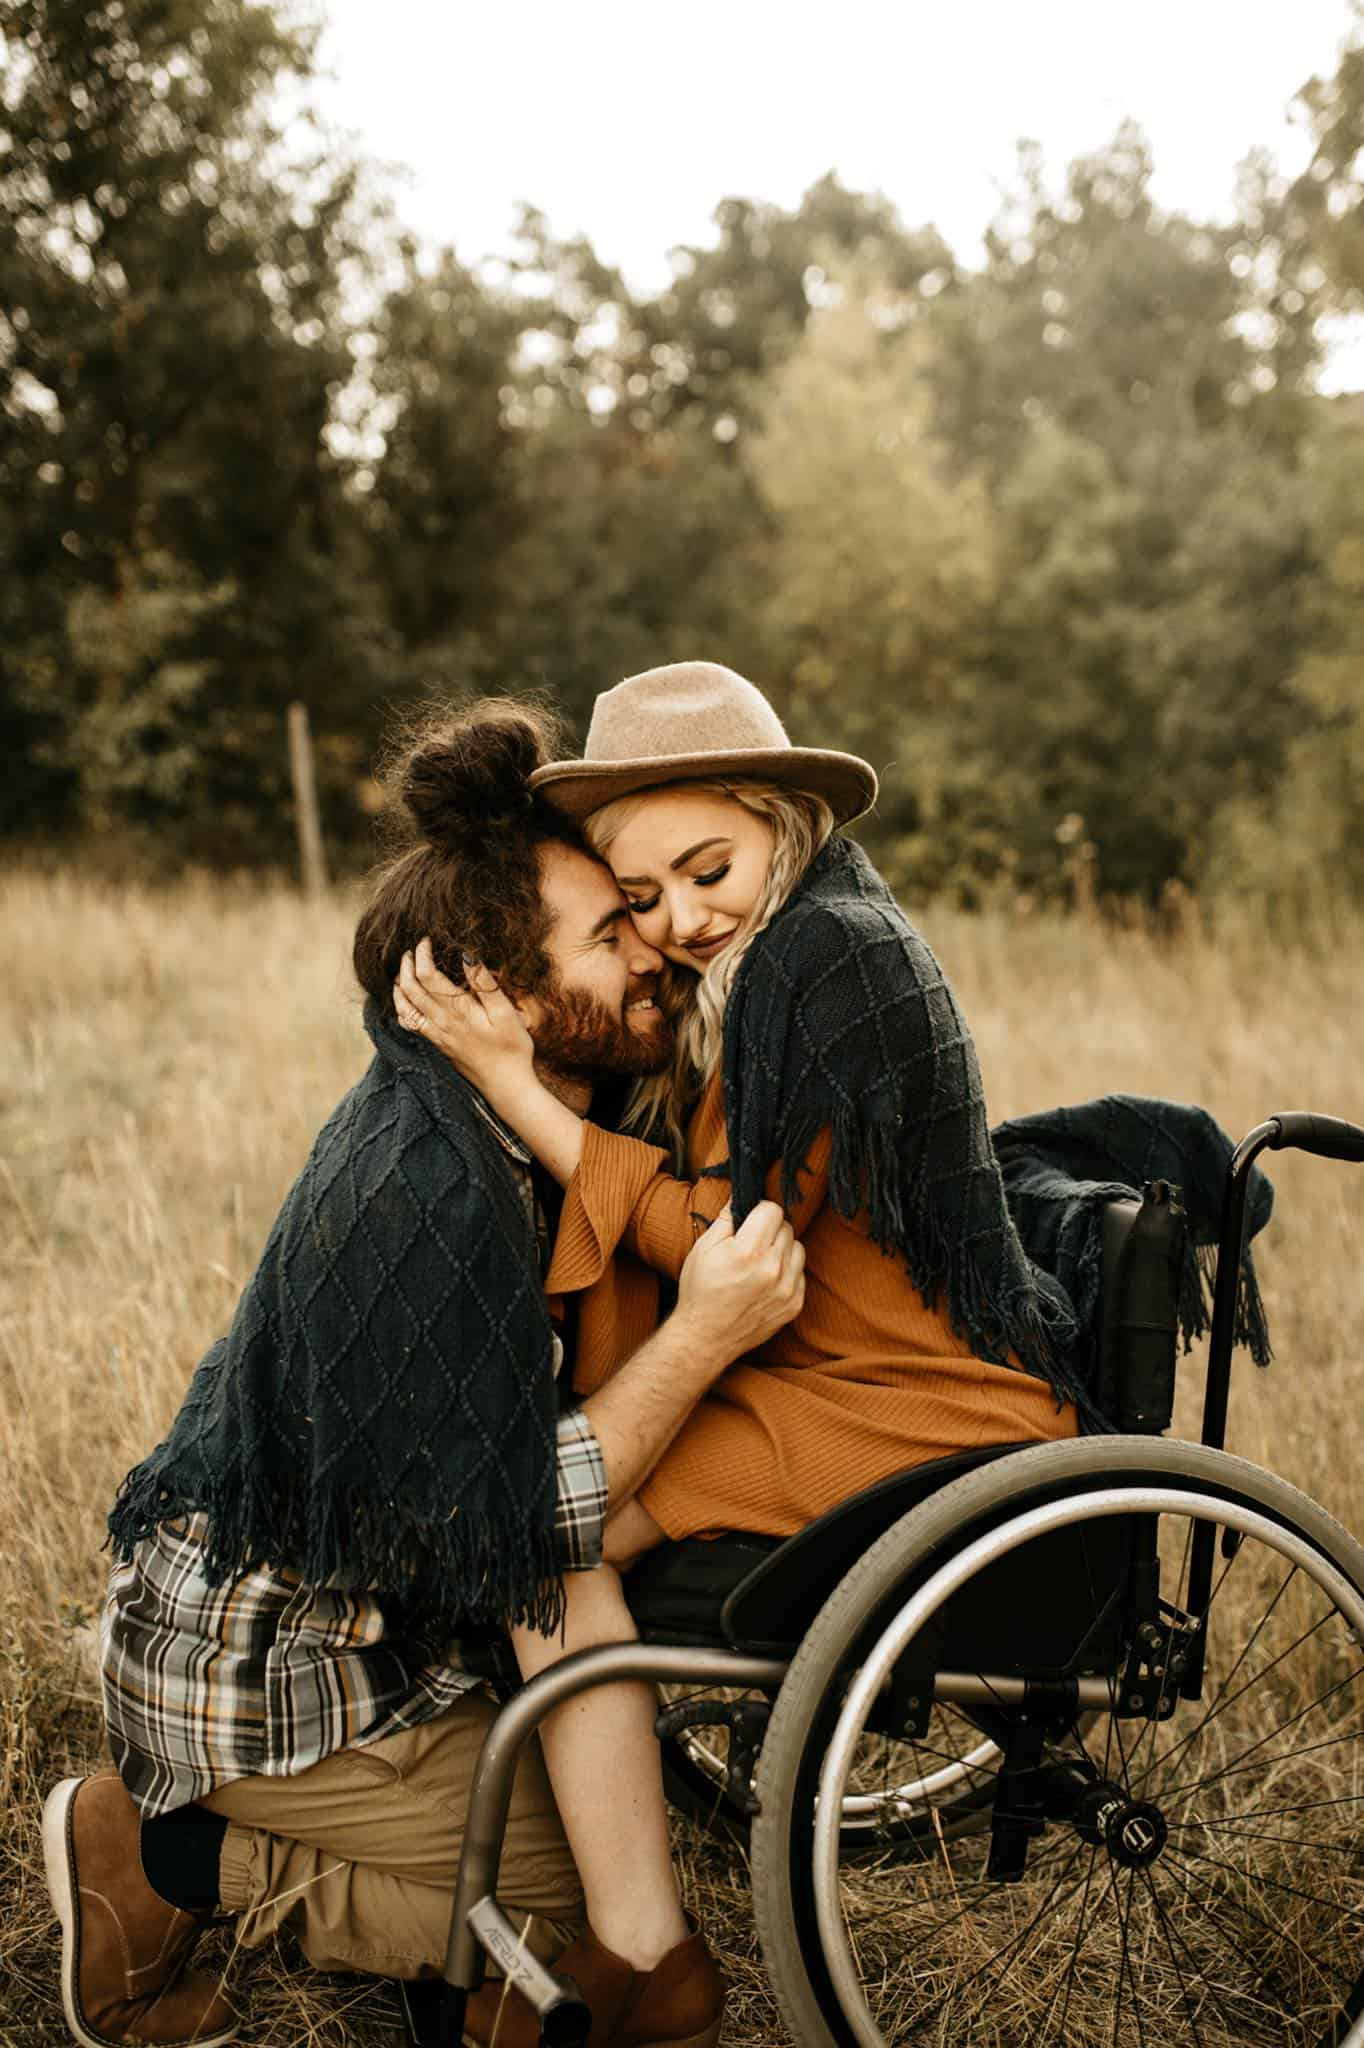 A man kneeing next to his wife who is sitting in a wheelchair embracing him